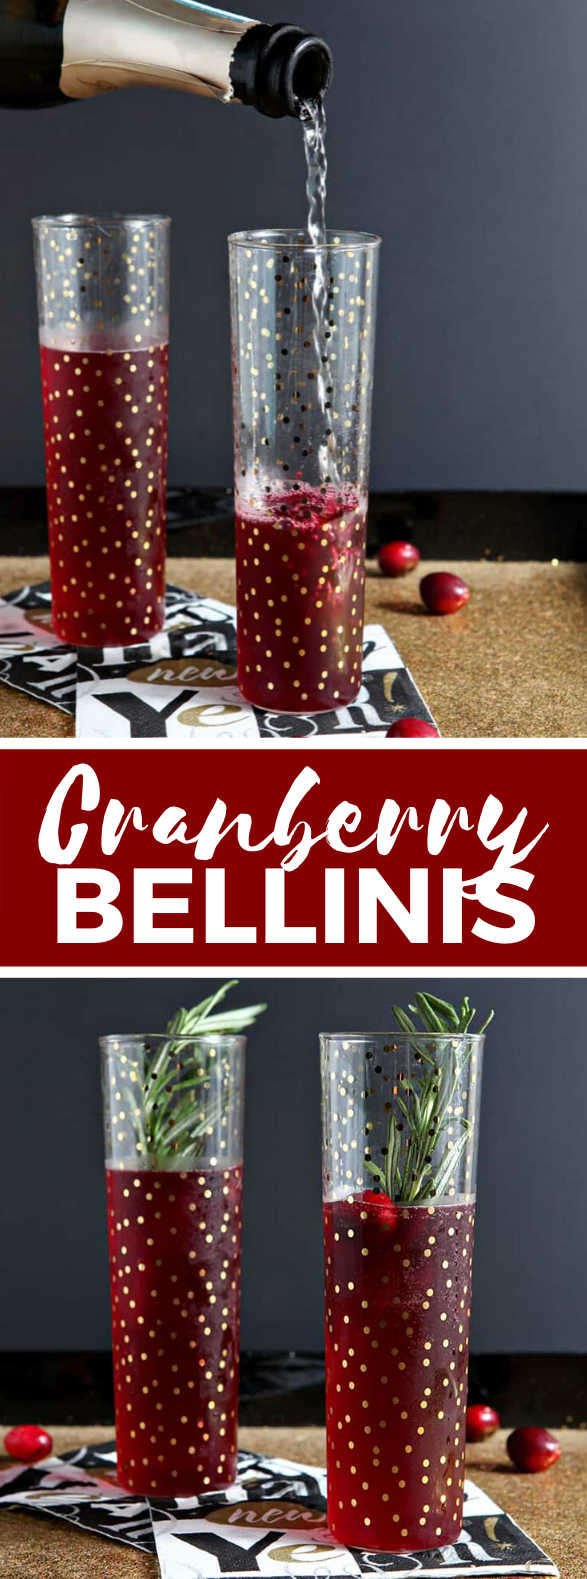 Cranberry Bellinis #drinks #cocktails